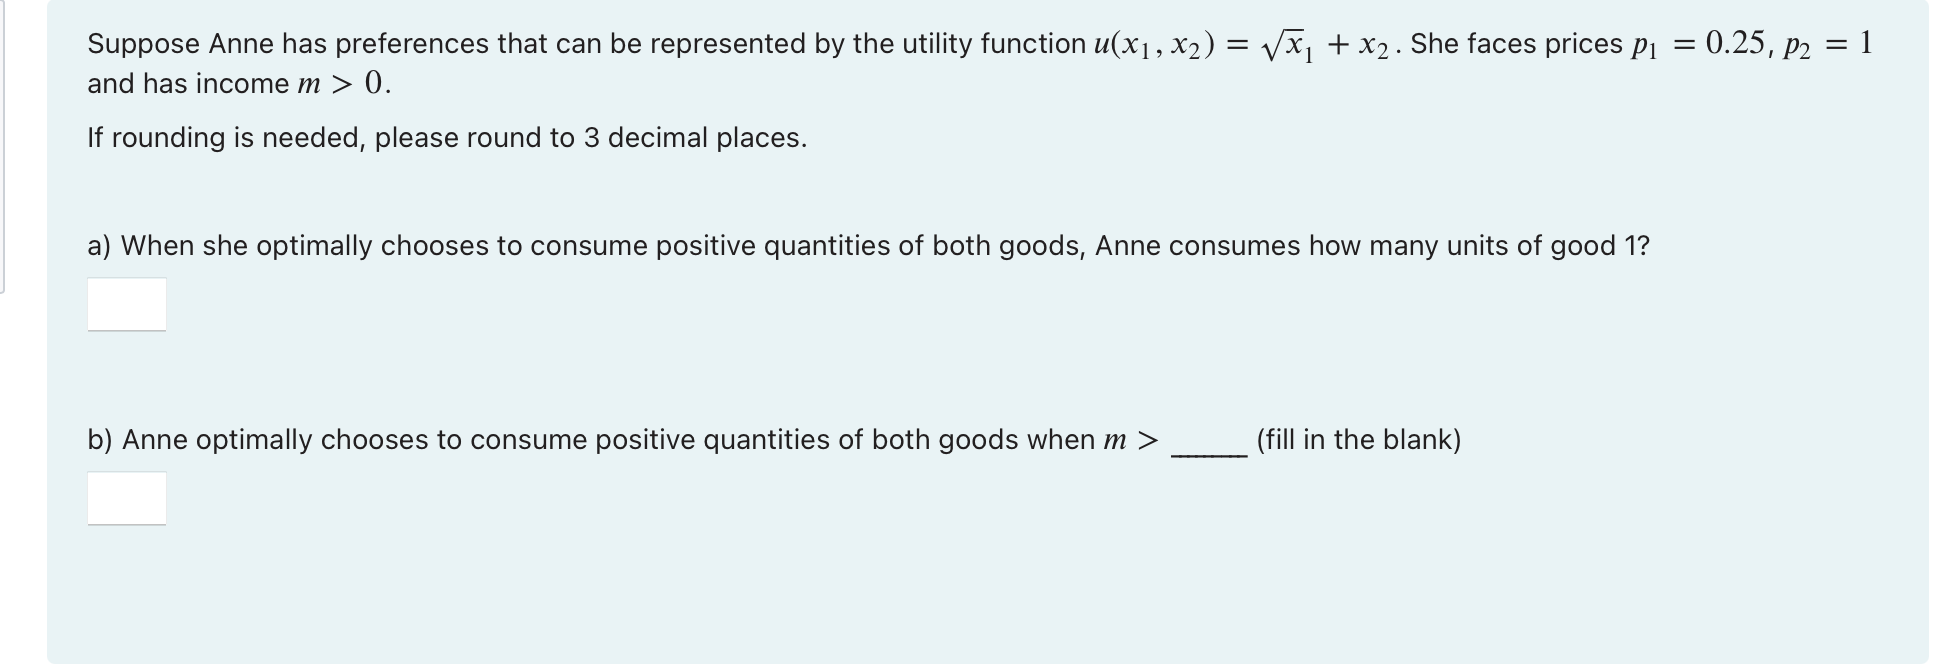 Suppose Anne has preferences that can be represented by the utility function u(x1, x2) = Vx1 + x2. She faces prices P1 = 0.25